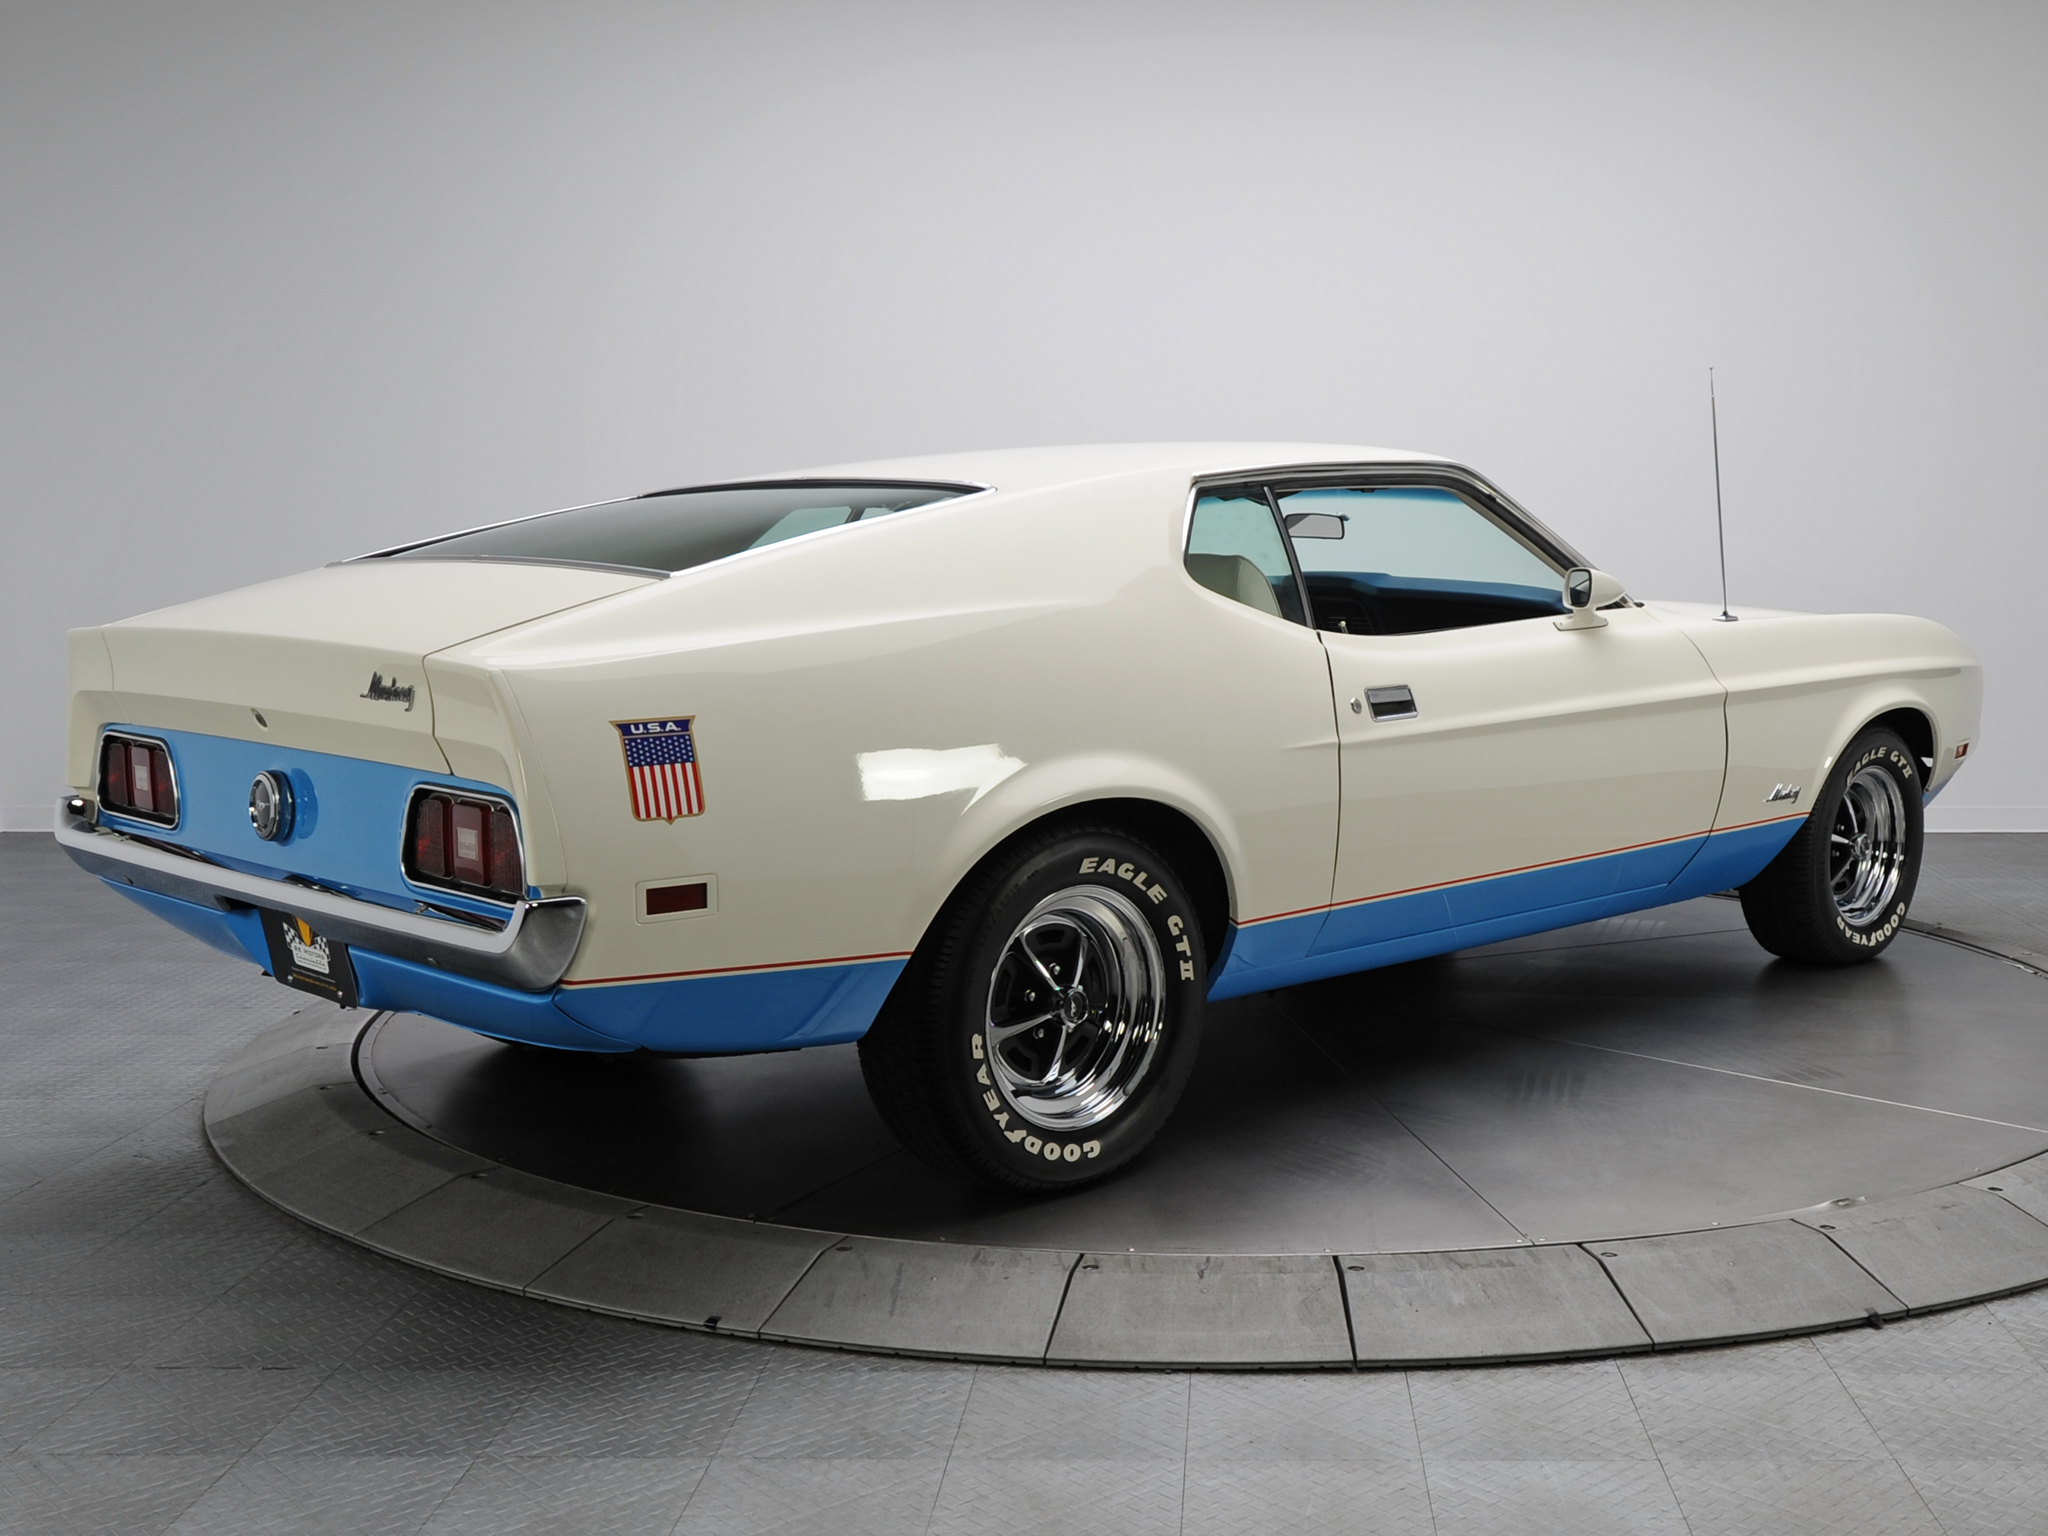 1972 ford mustang sprint sportsroof muscle classic g wallpaper 2048x1536 94007 wallpaperup